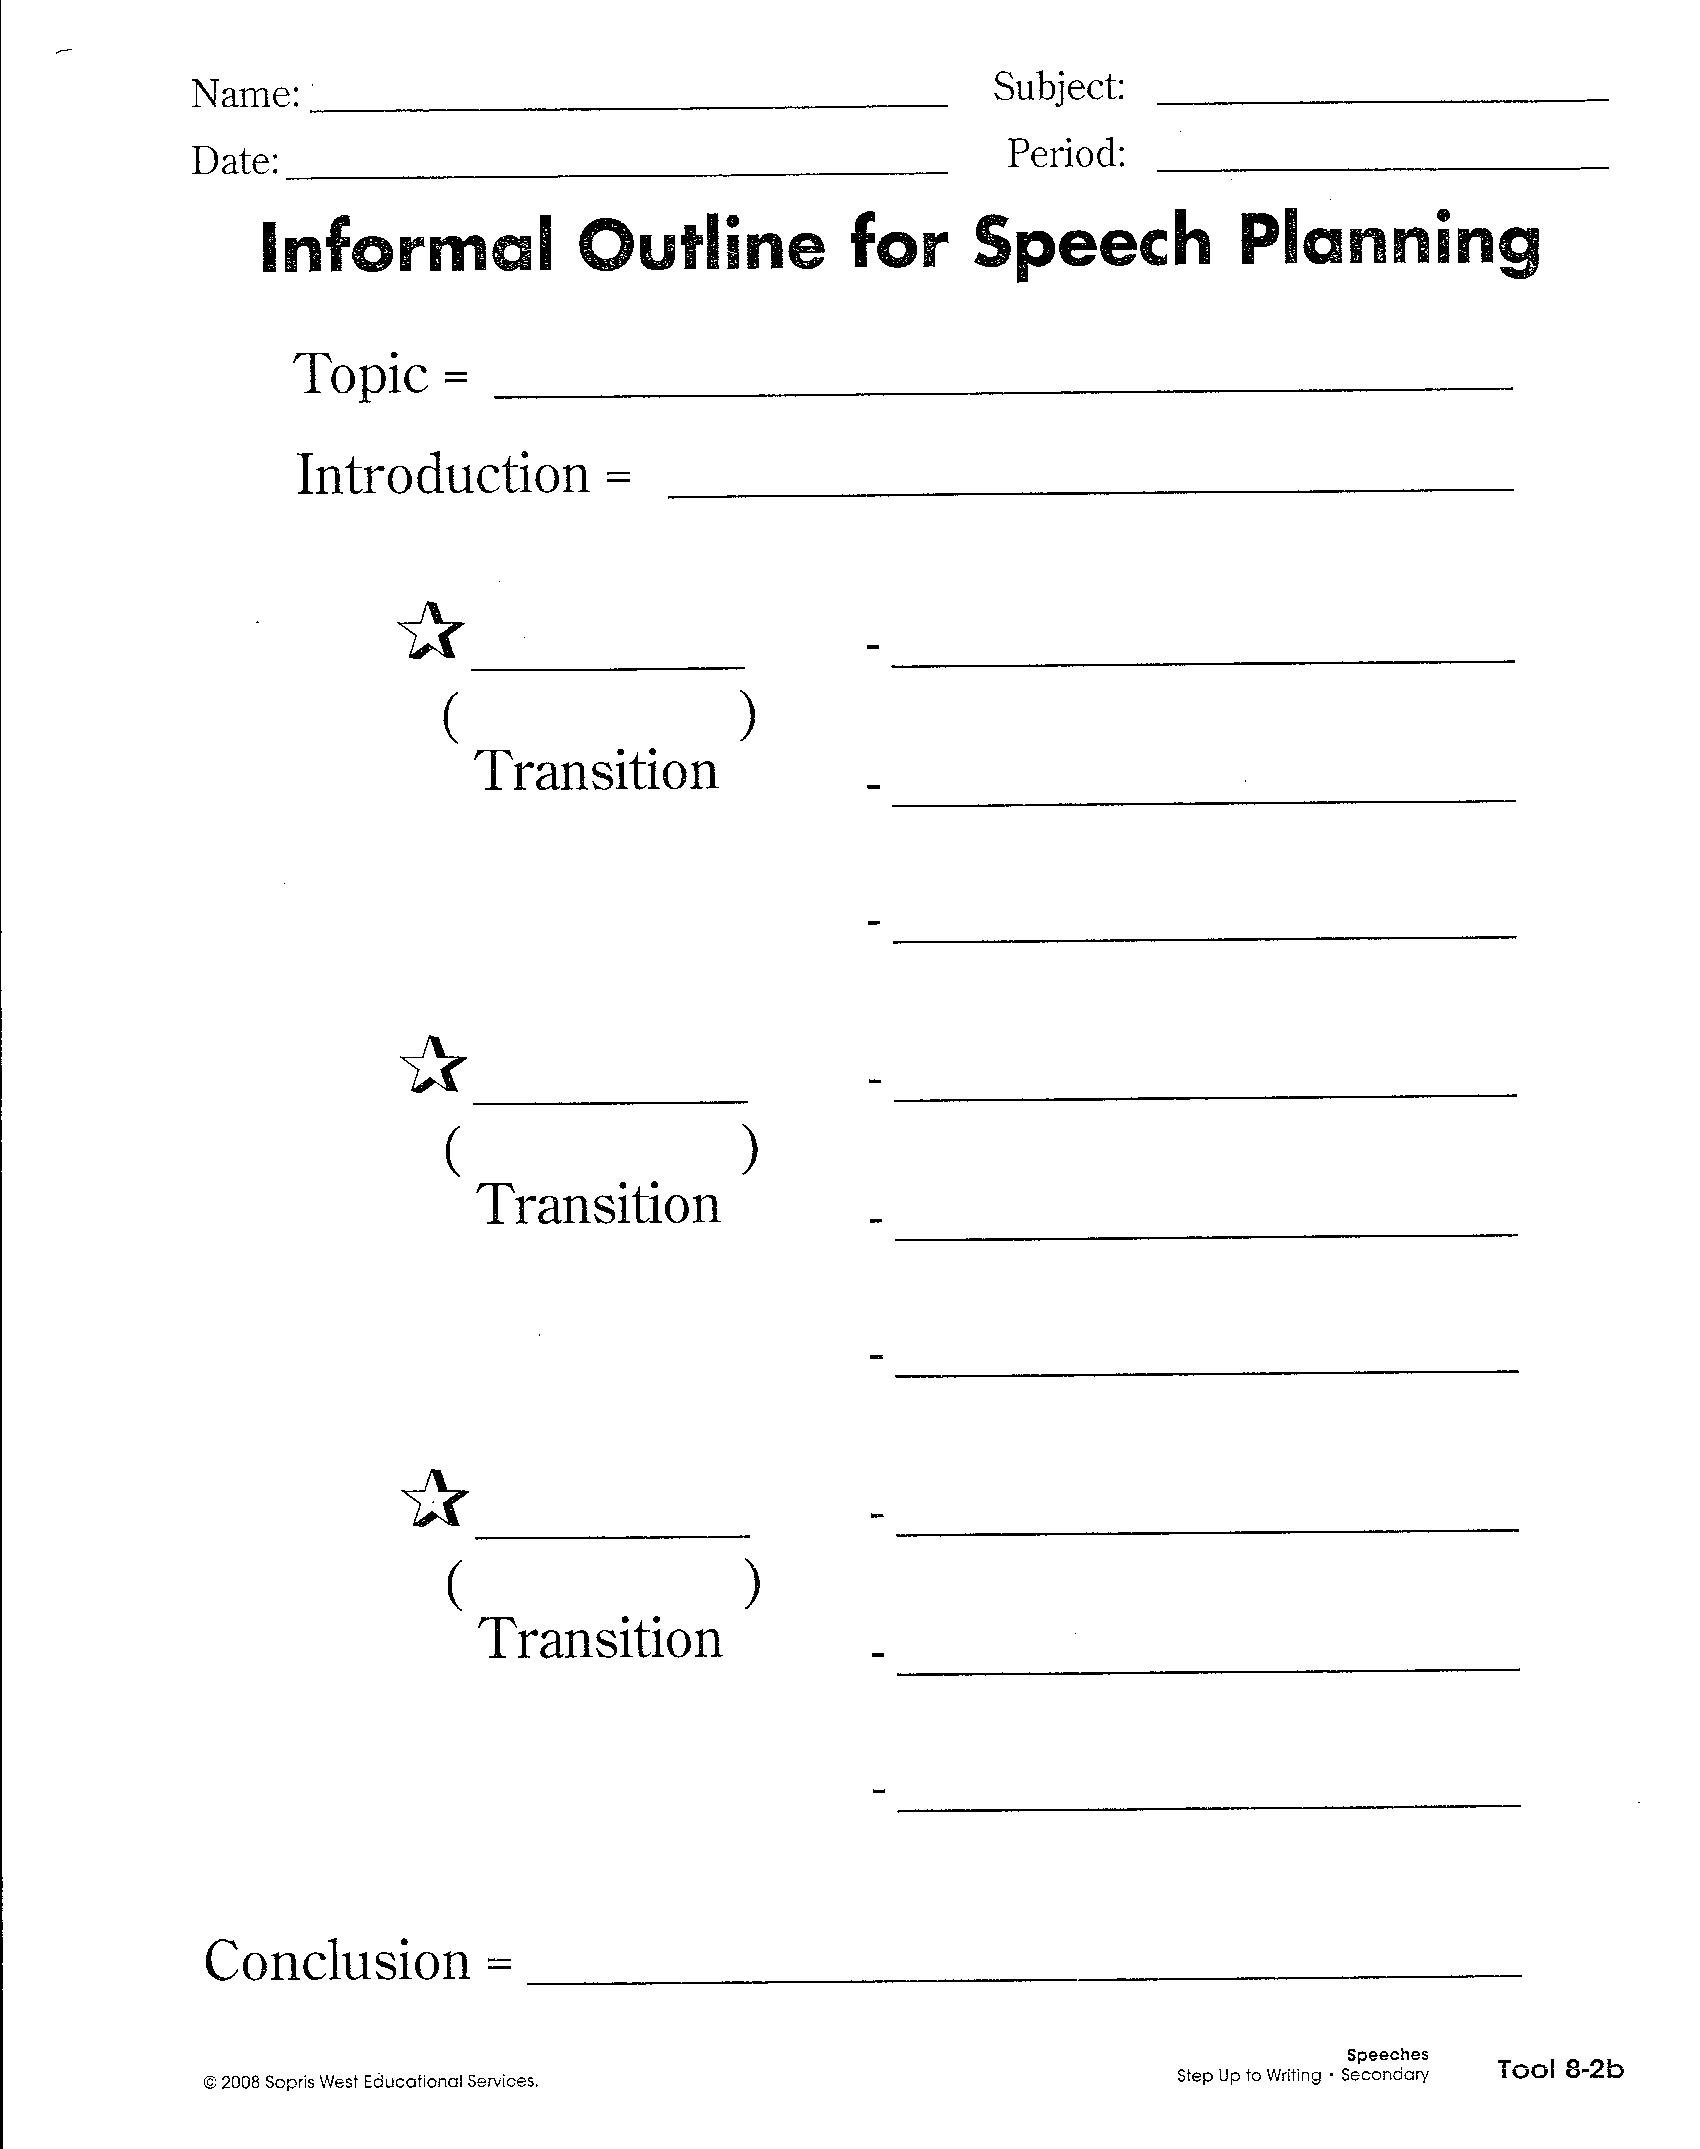 023 Basic Research Paper Outline Suw Planning Your Speech With An Informal Imposing Easy Template Full